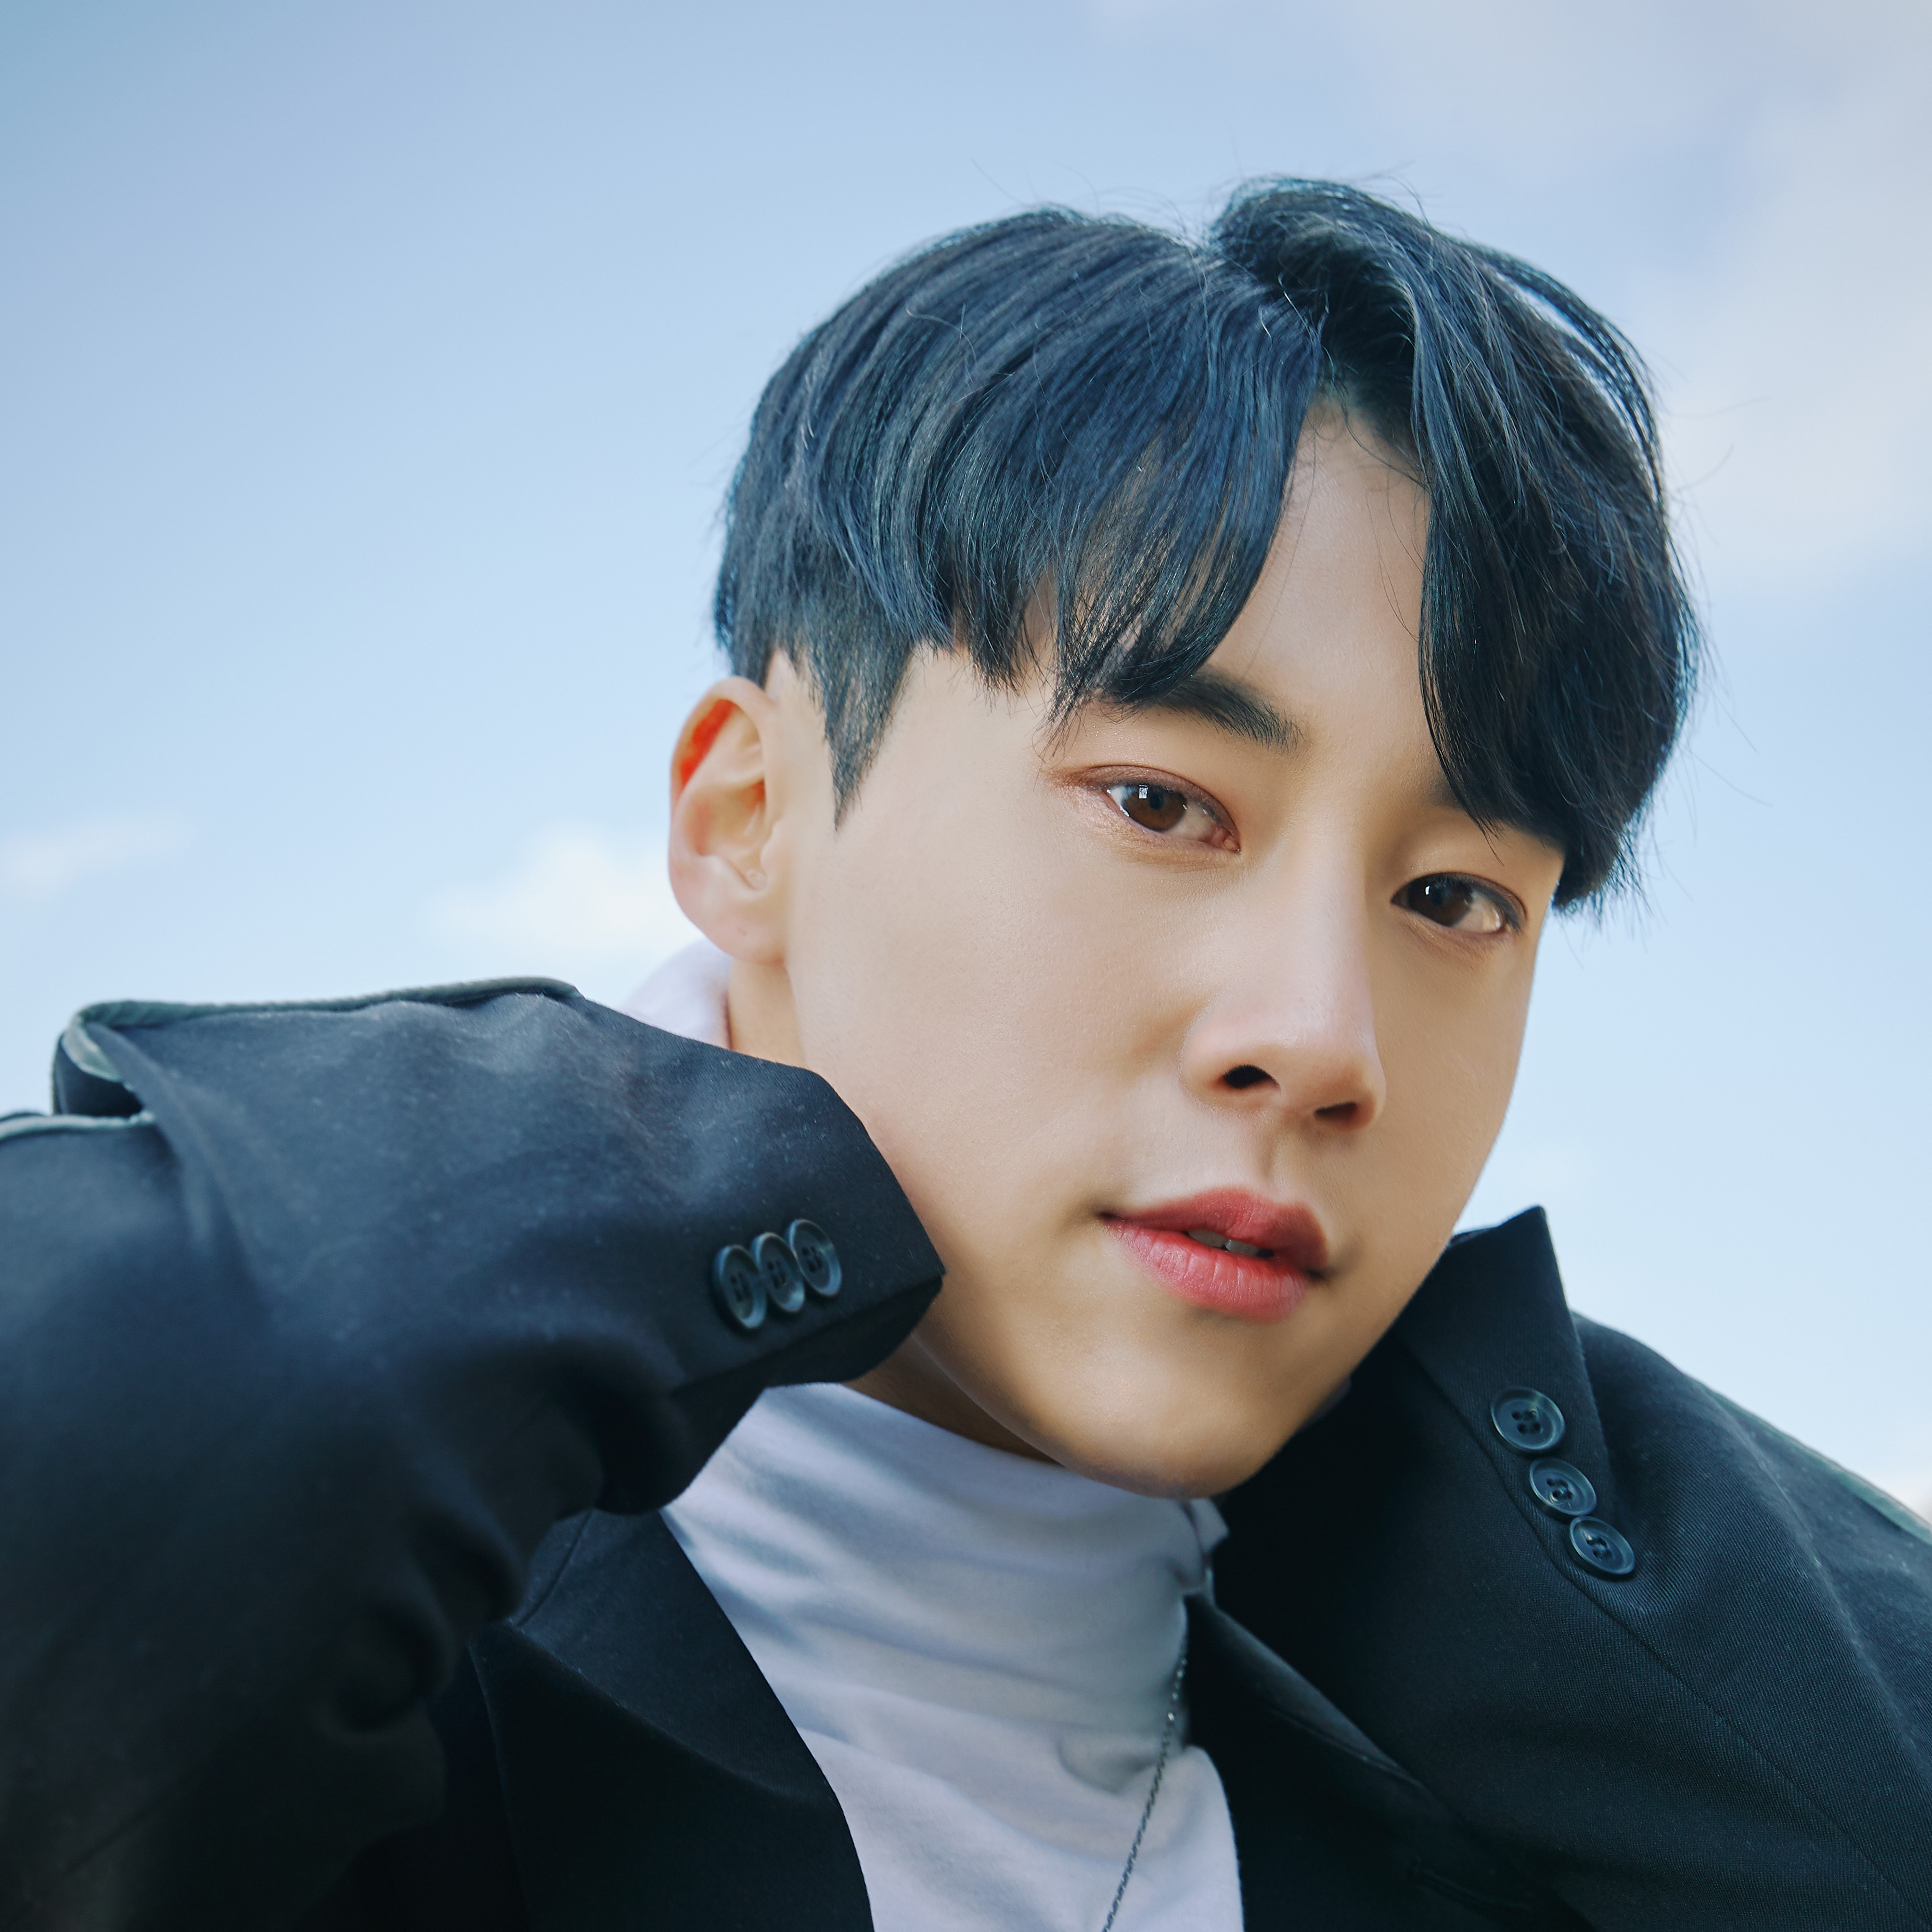 Sungwook profile image